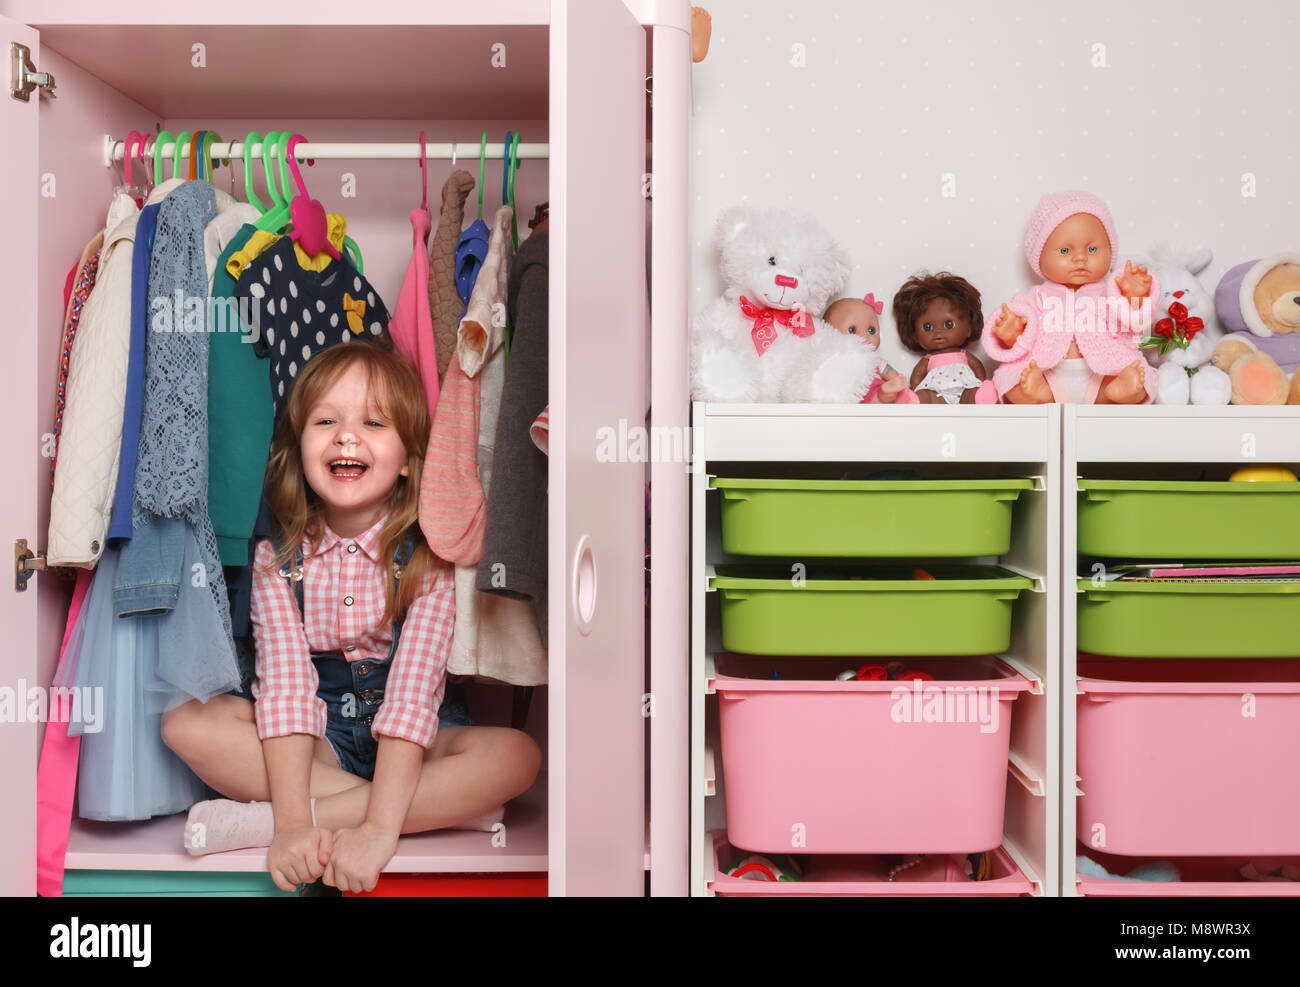 A little girl is sitting in a closet with a children's departmen - Stock Image